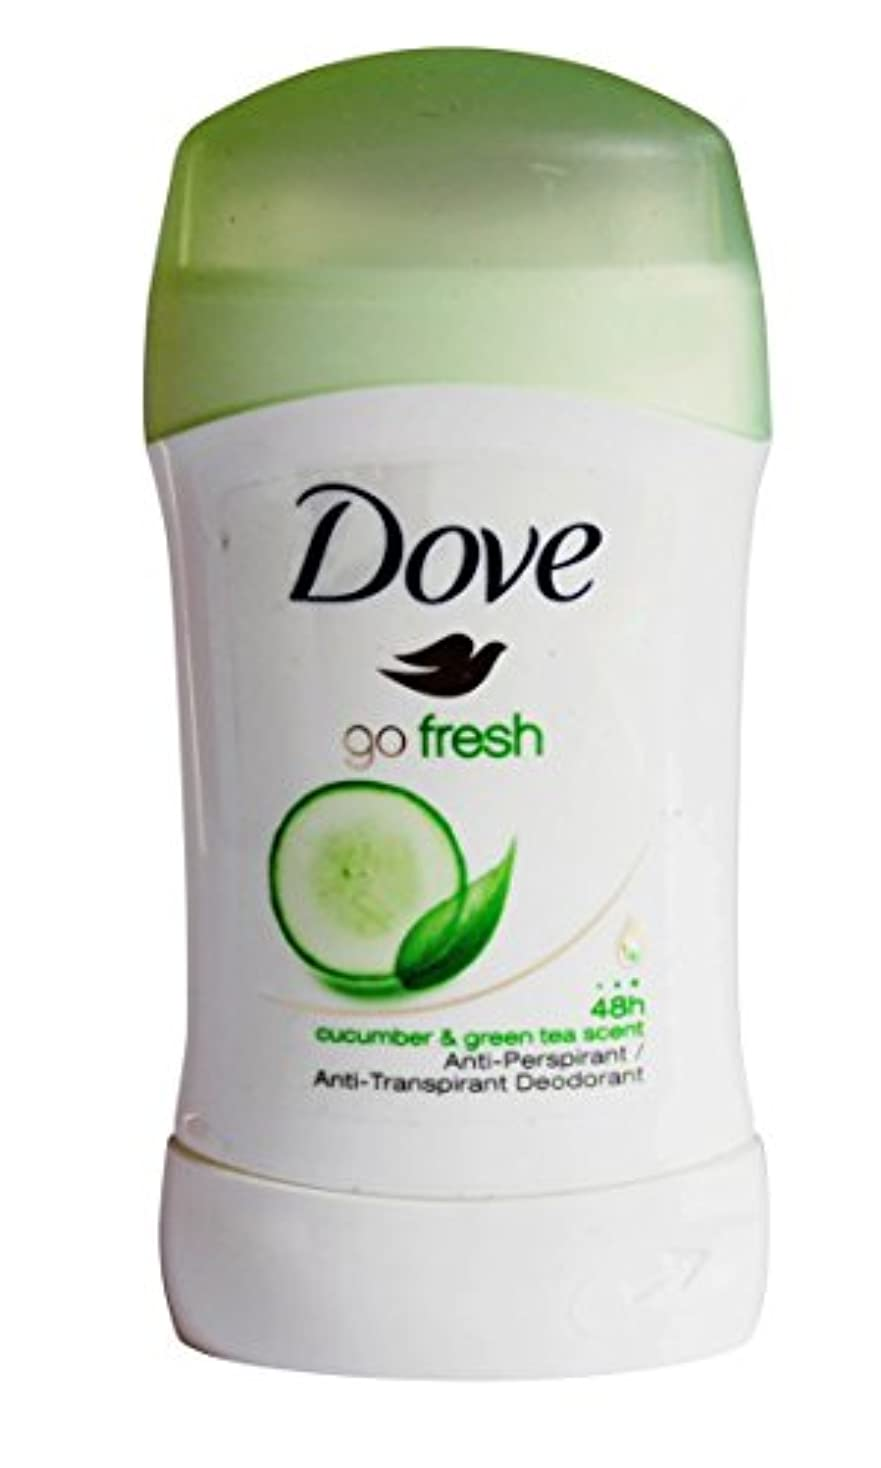 インチ排他的サーキットに行くDove Go Fresh (Cucumber & Green Tea) Antiperspirant Deodorant Stick 40 ml